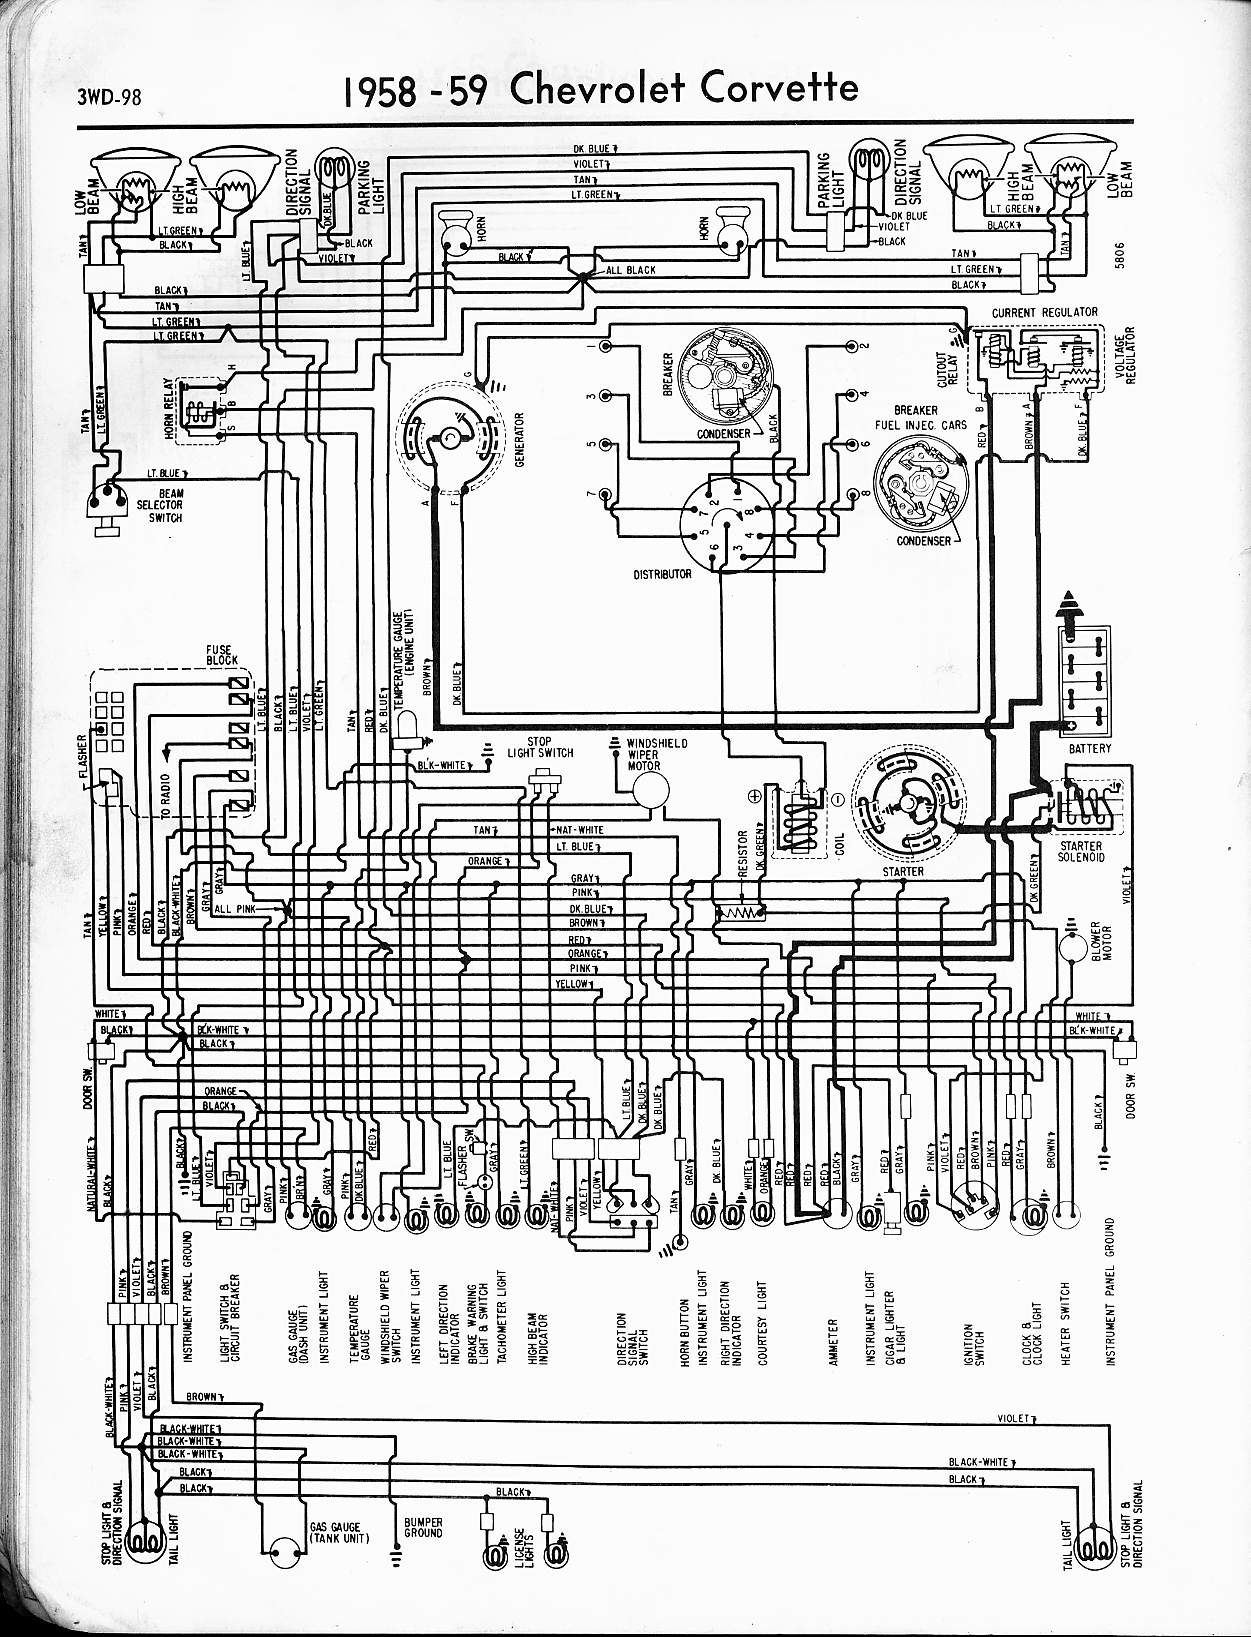 wrg 5951] 2003 mustang steering column wiring diagram 1973 ford f100 turn signal wiring diagram tech tips